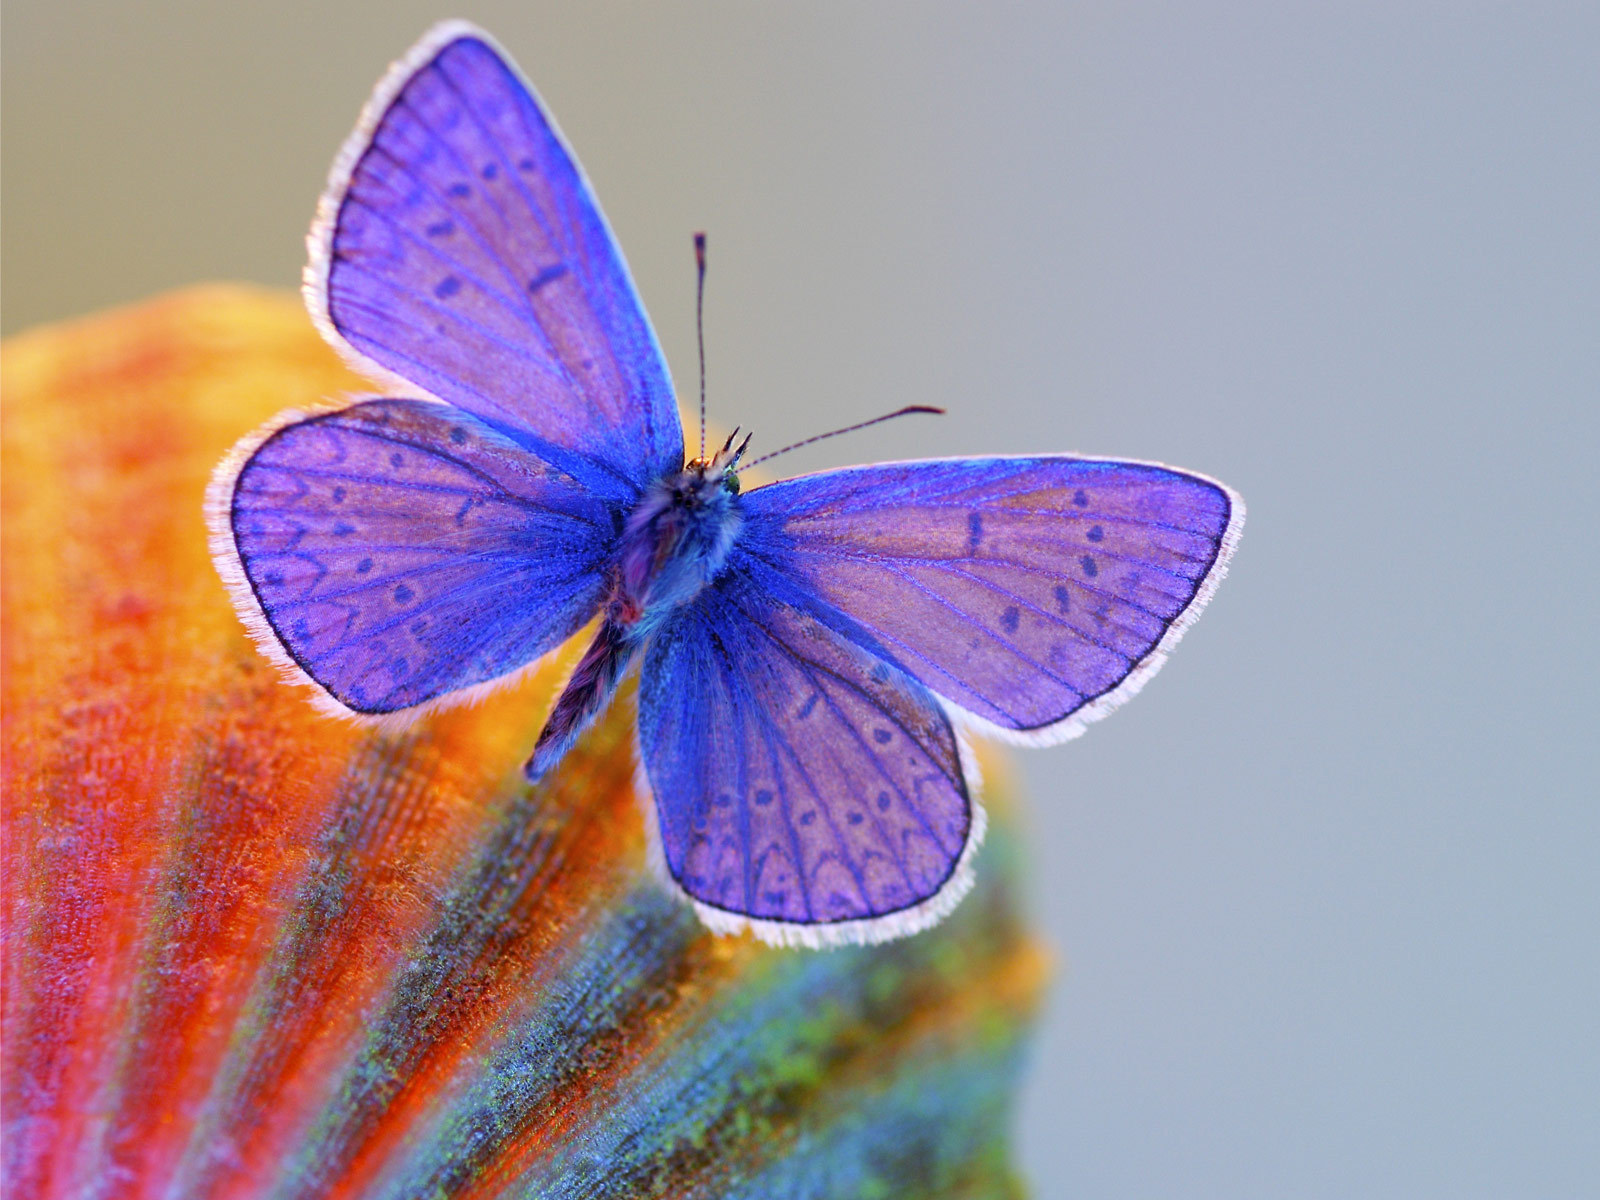 3d Wallpaper In Pakistan Wnp Wallpapers Amp Pictures Beautiful Amp Colorful Butterfly